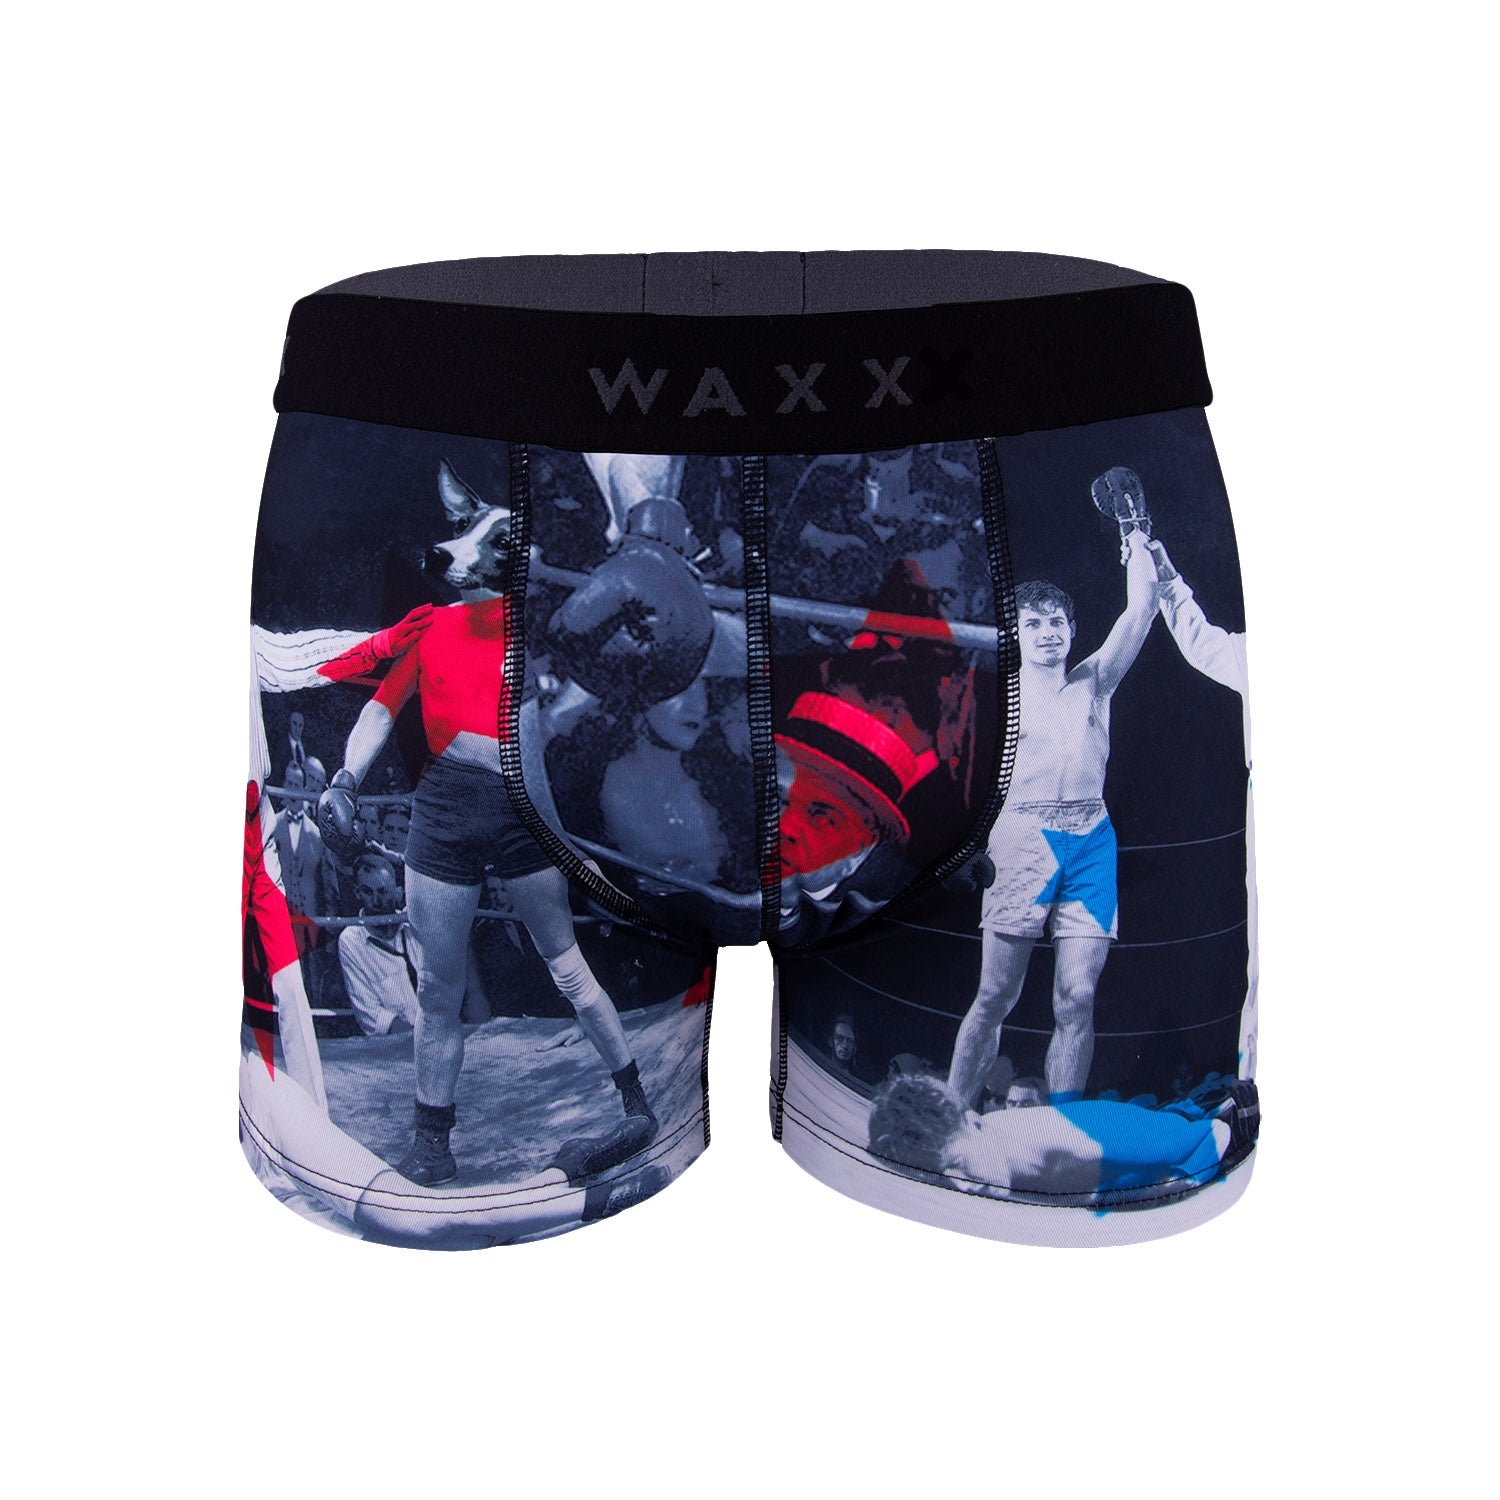 Boxer Shorts Boxing Pattern